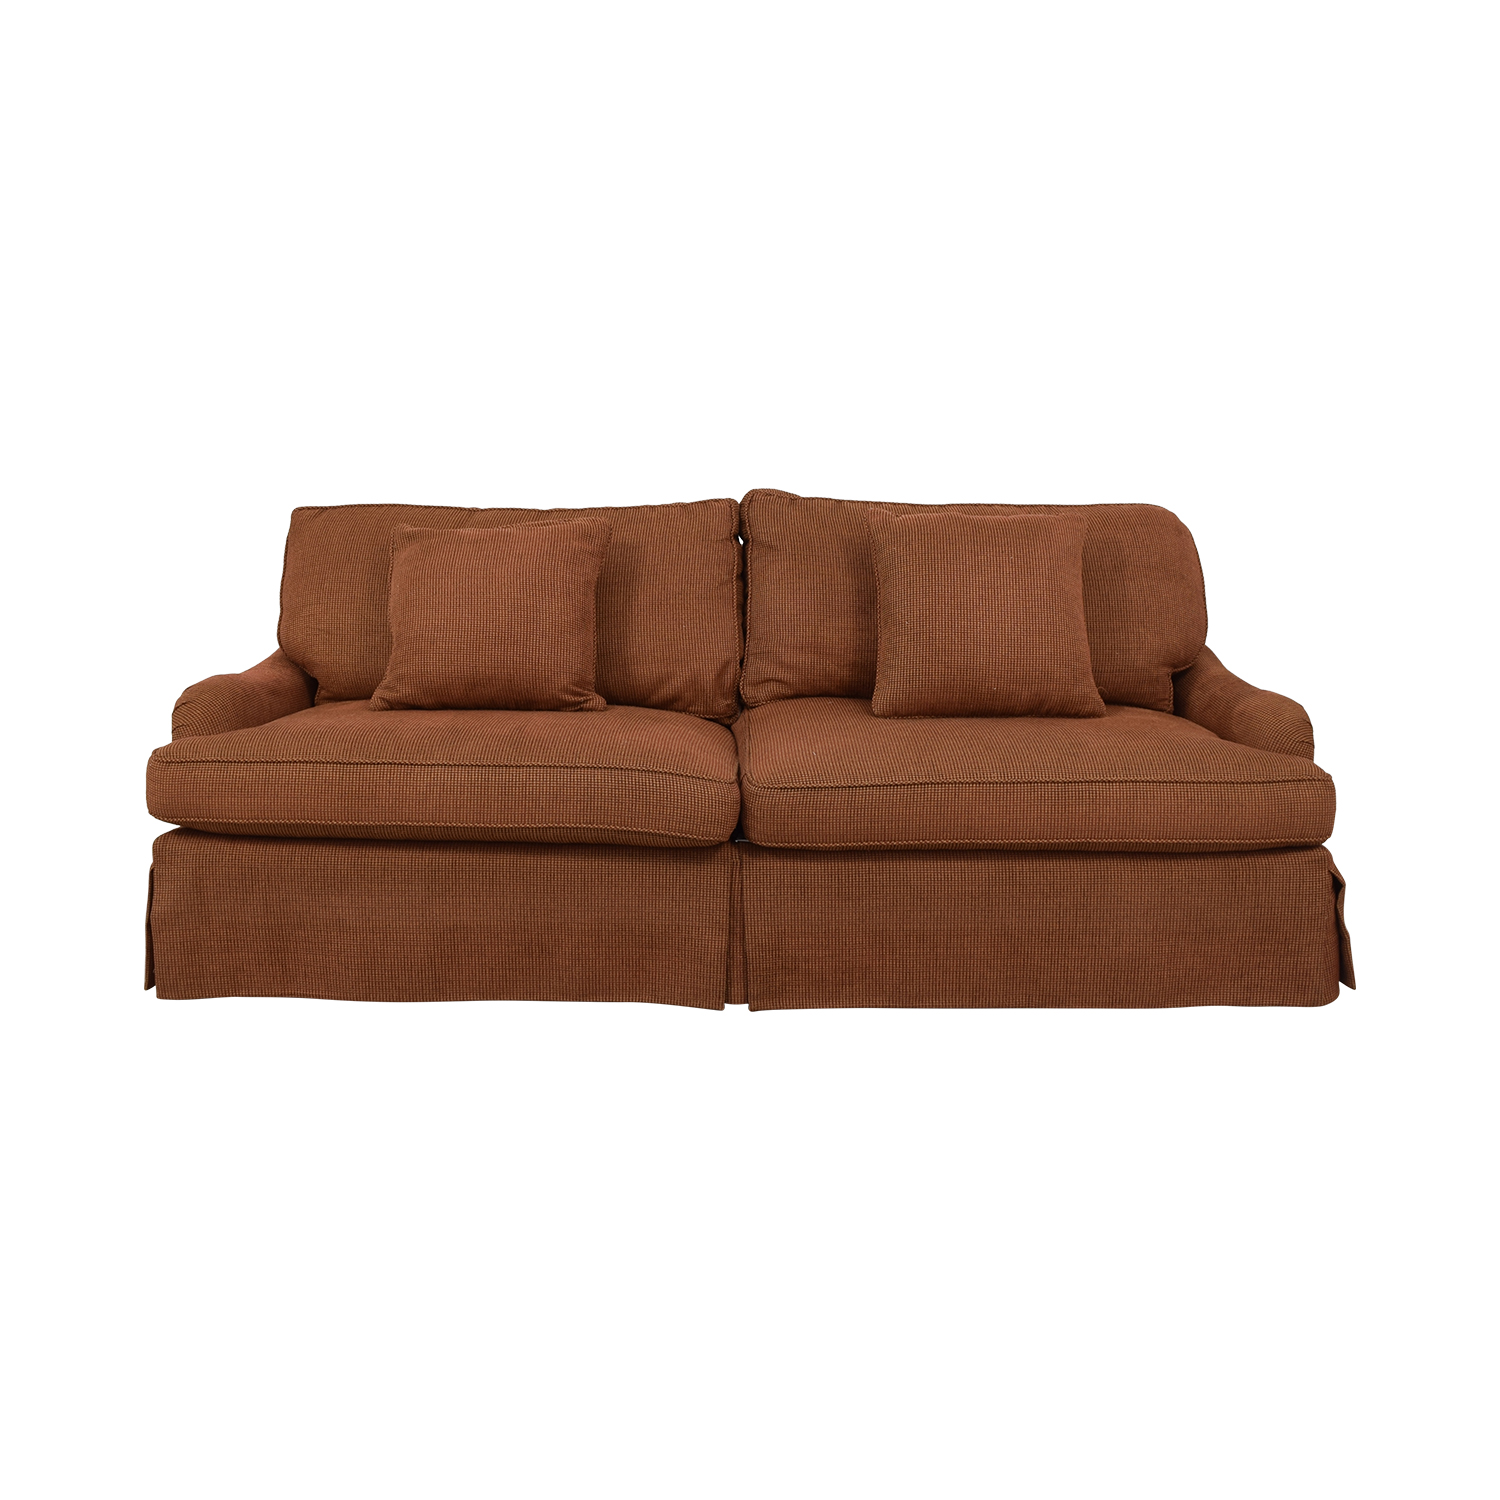 Safavieh Safavieh Long Down Sofa by Lee Industries for sale